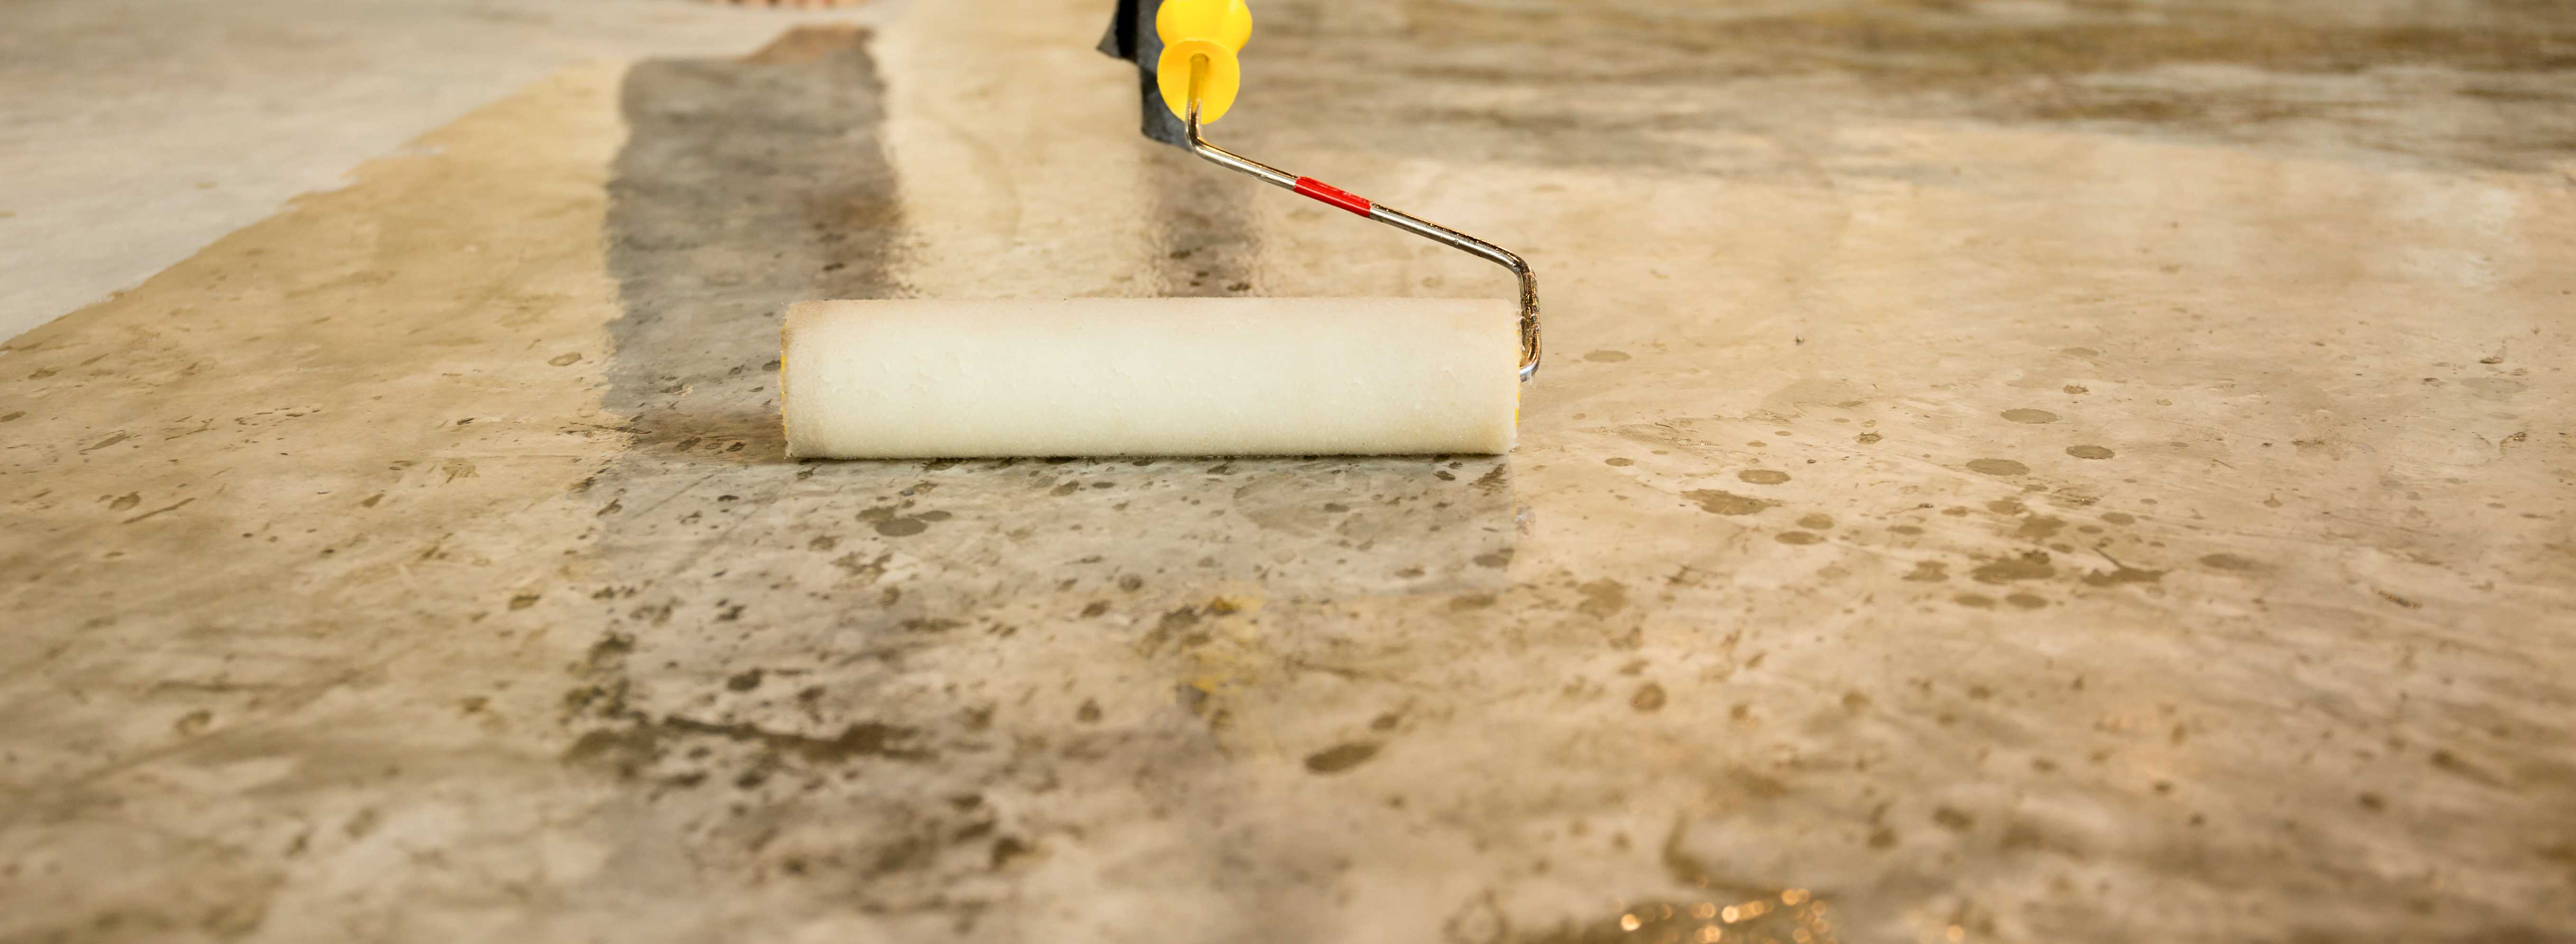 Concrete Floor Sealing Cleaning